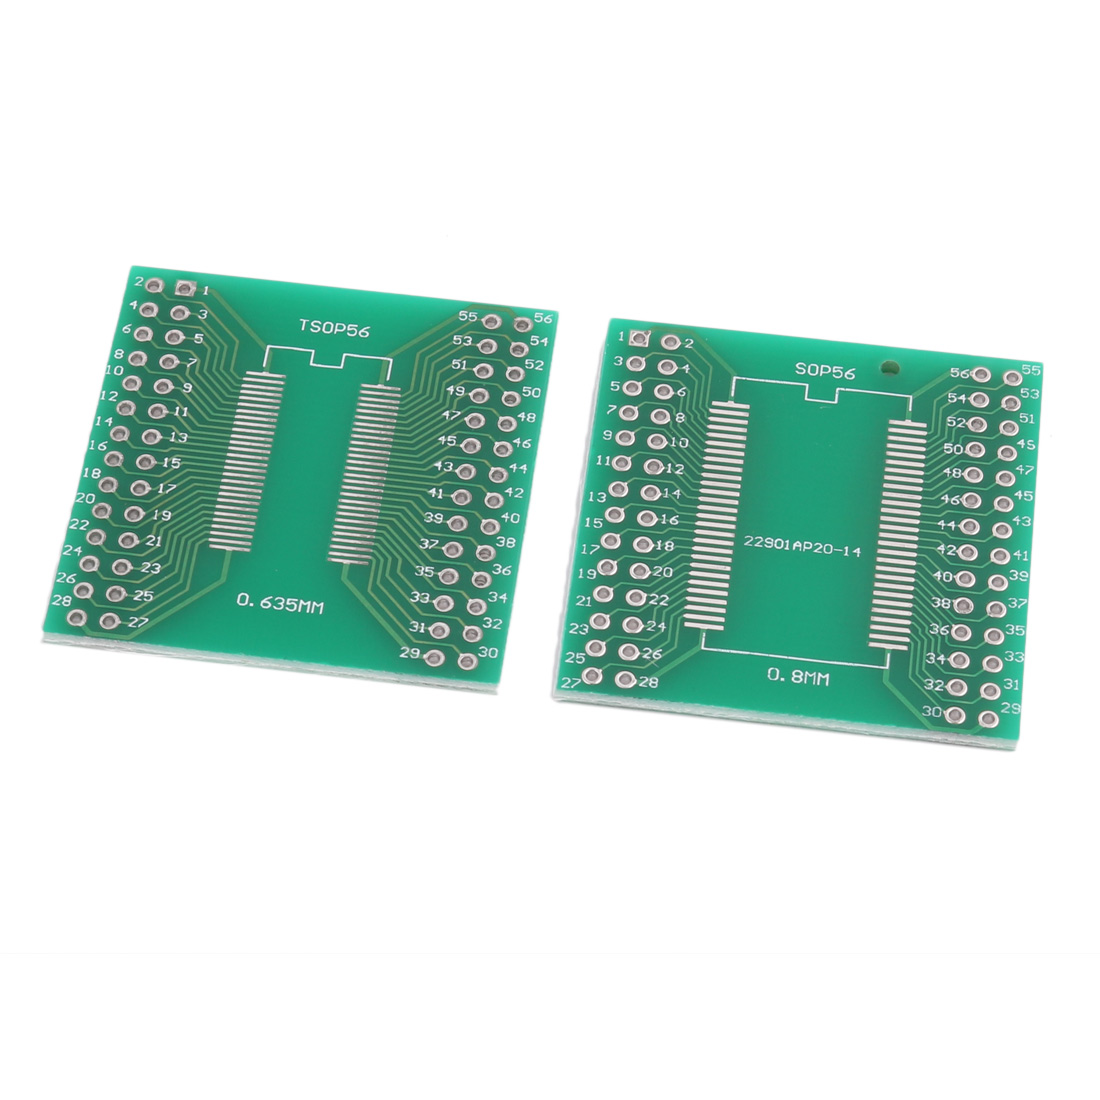 2Pcs Prototyping Double Side PCB Board Stripboard Green 37x36mm SOP56